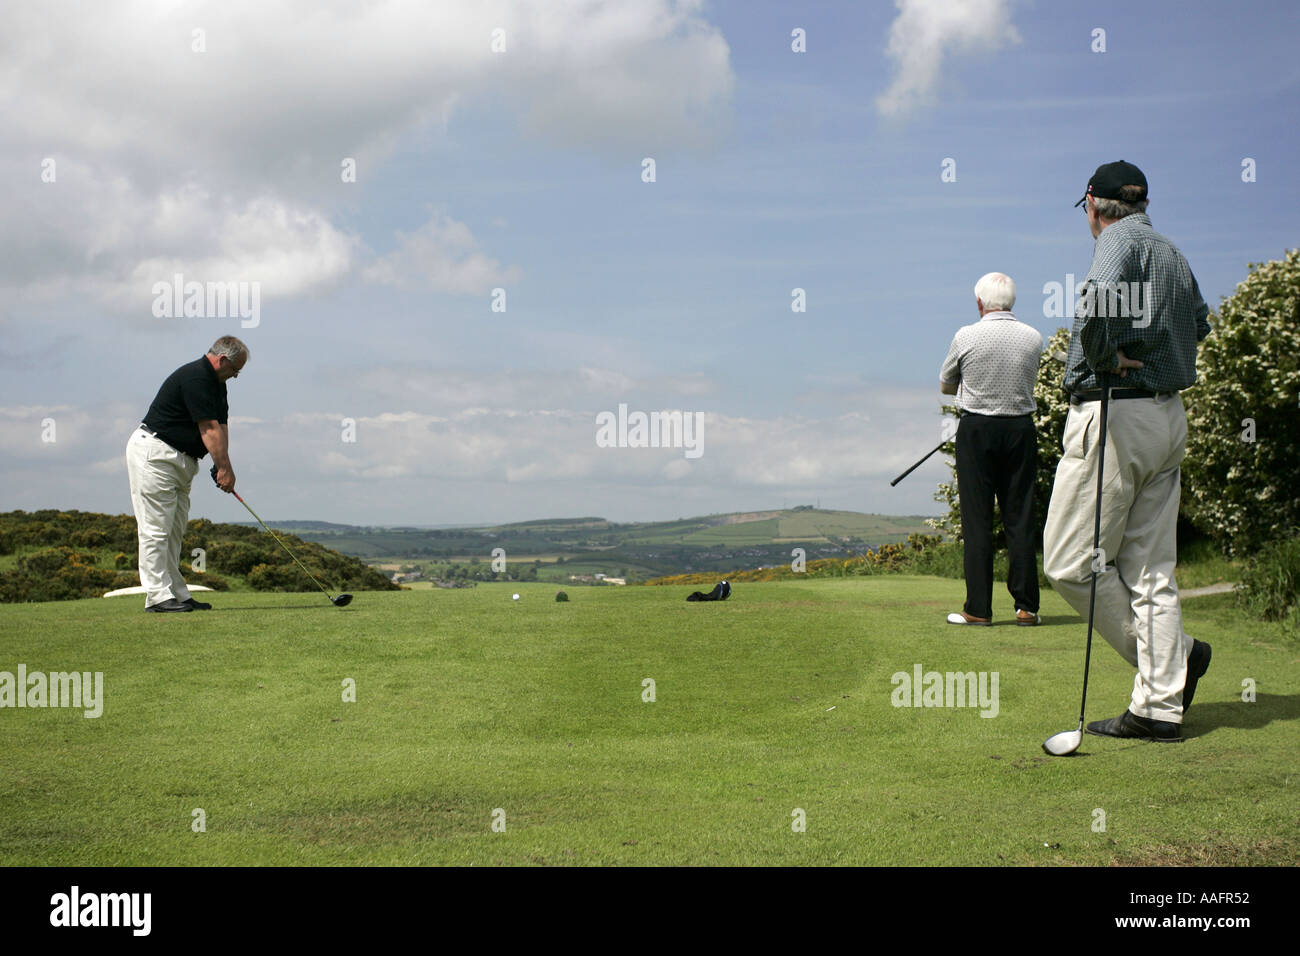 Golfers about to Tee off at Scrabo Golf Club Newtownards County Down Northern Ireland - Stock Image